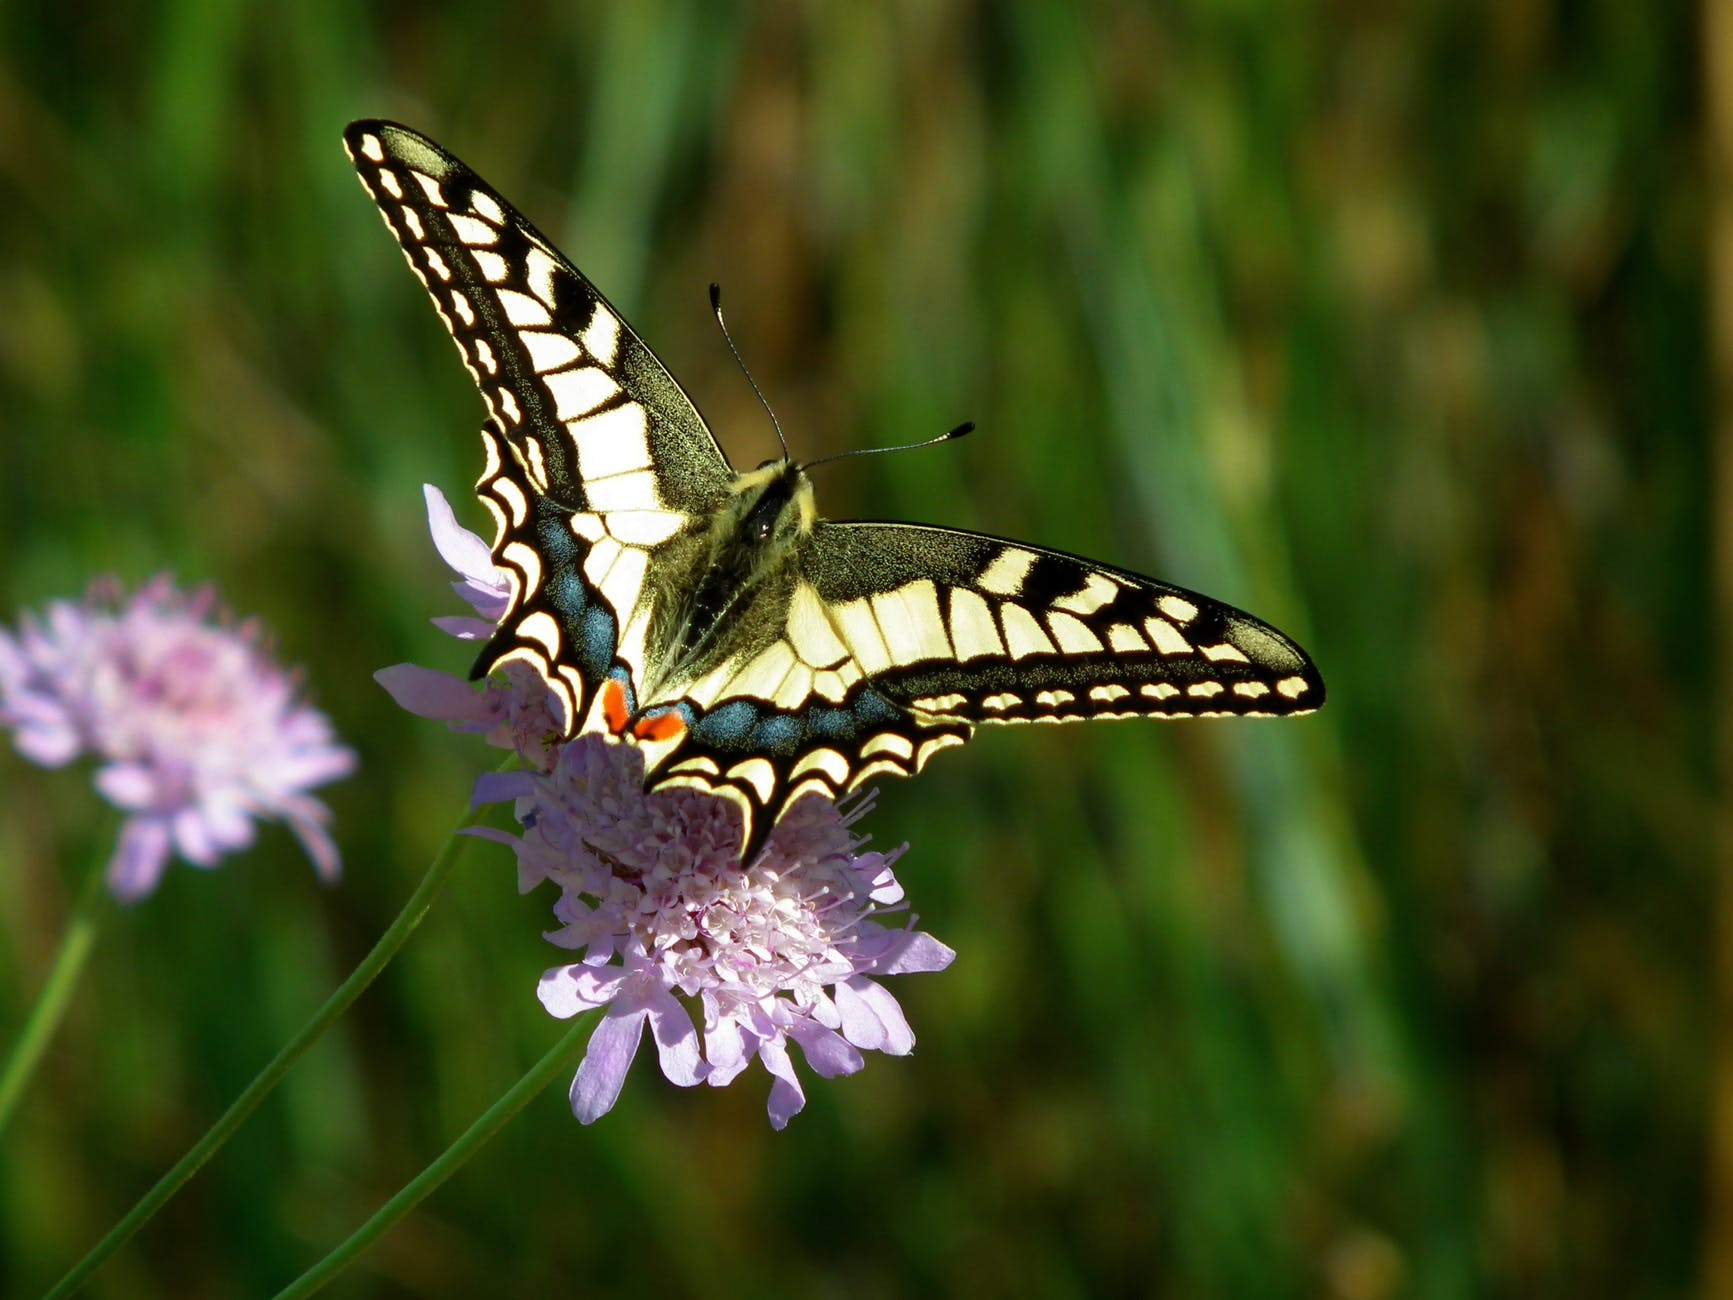 close up of butterfly pollinating on flower